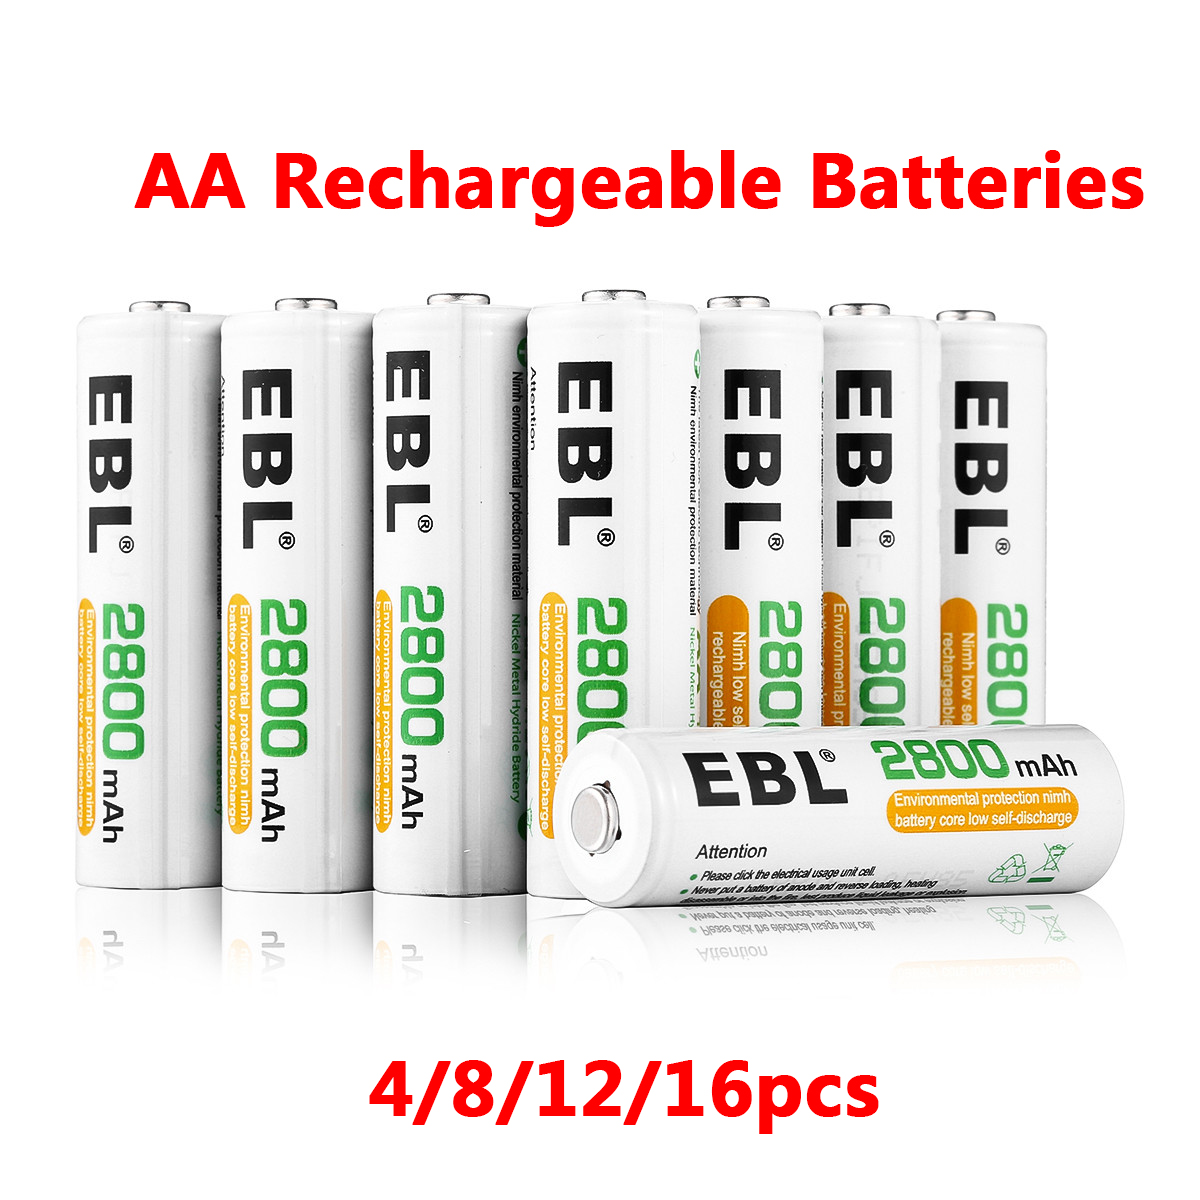 EBL <font><b>1.2V</b></font> Rechargeable-<font><b>Battery</b></font> 2800mAh <font><b>AA</b></font> <font><b>Battery</b></font> Pre-charged <font><b>Ni</b></font>-<font><b>MH</b></font> Rechargeable <font><b>Batteries</b></font> Bateria for Camera Flashlight image